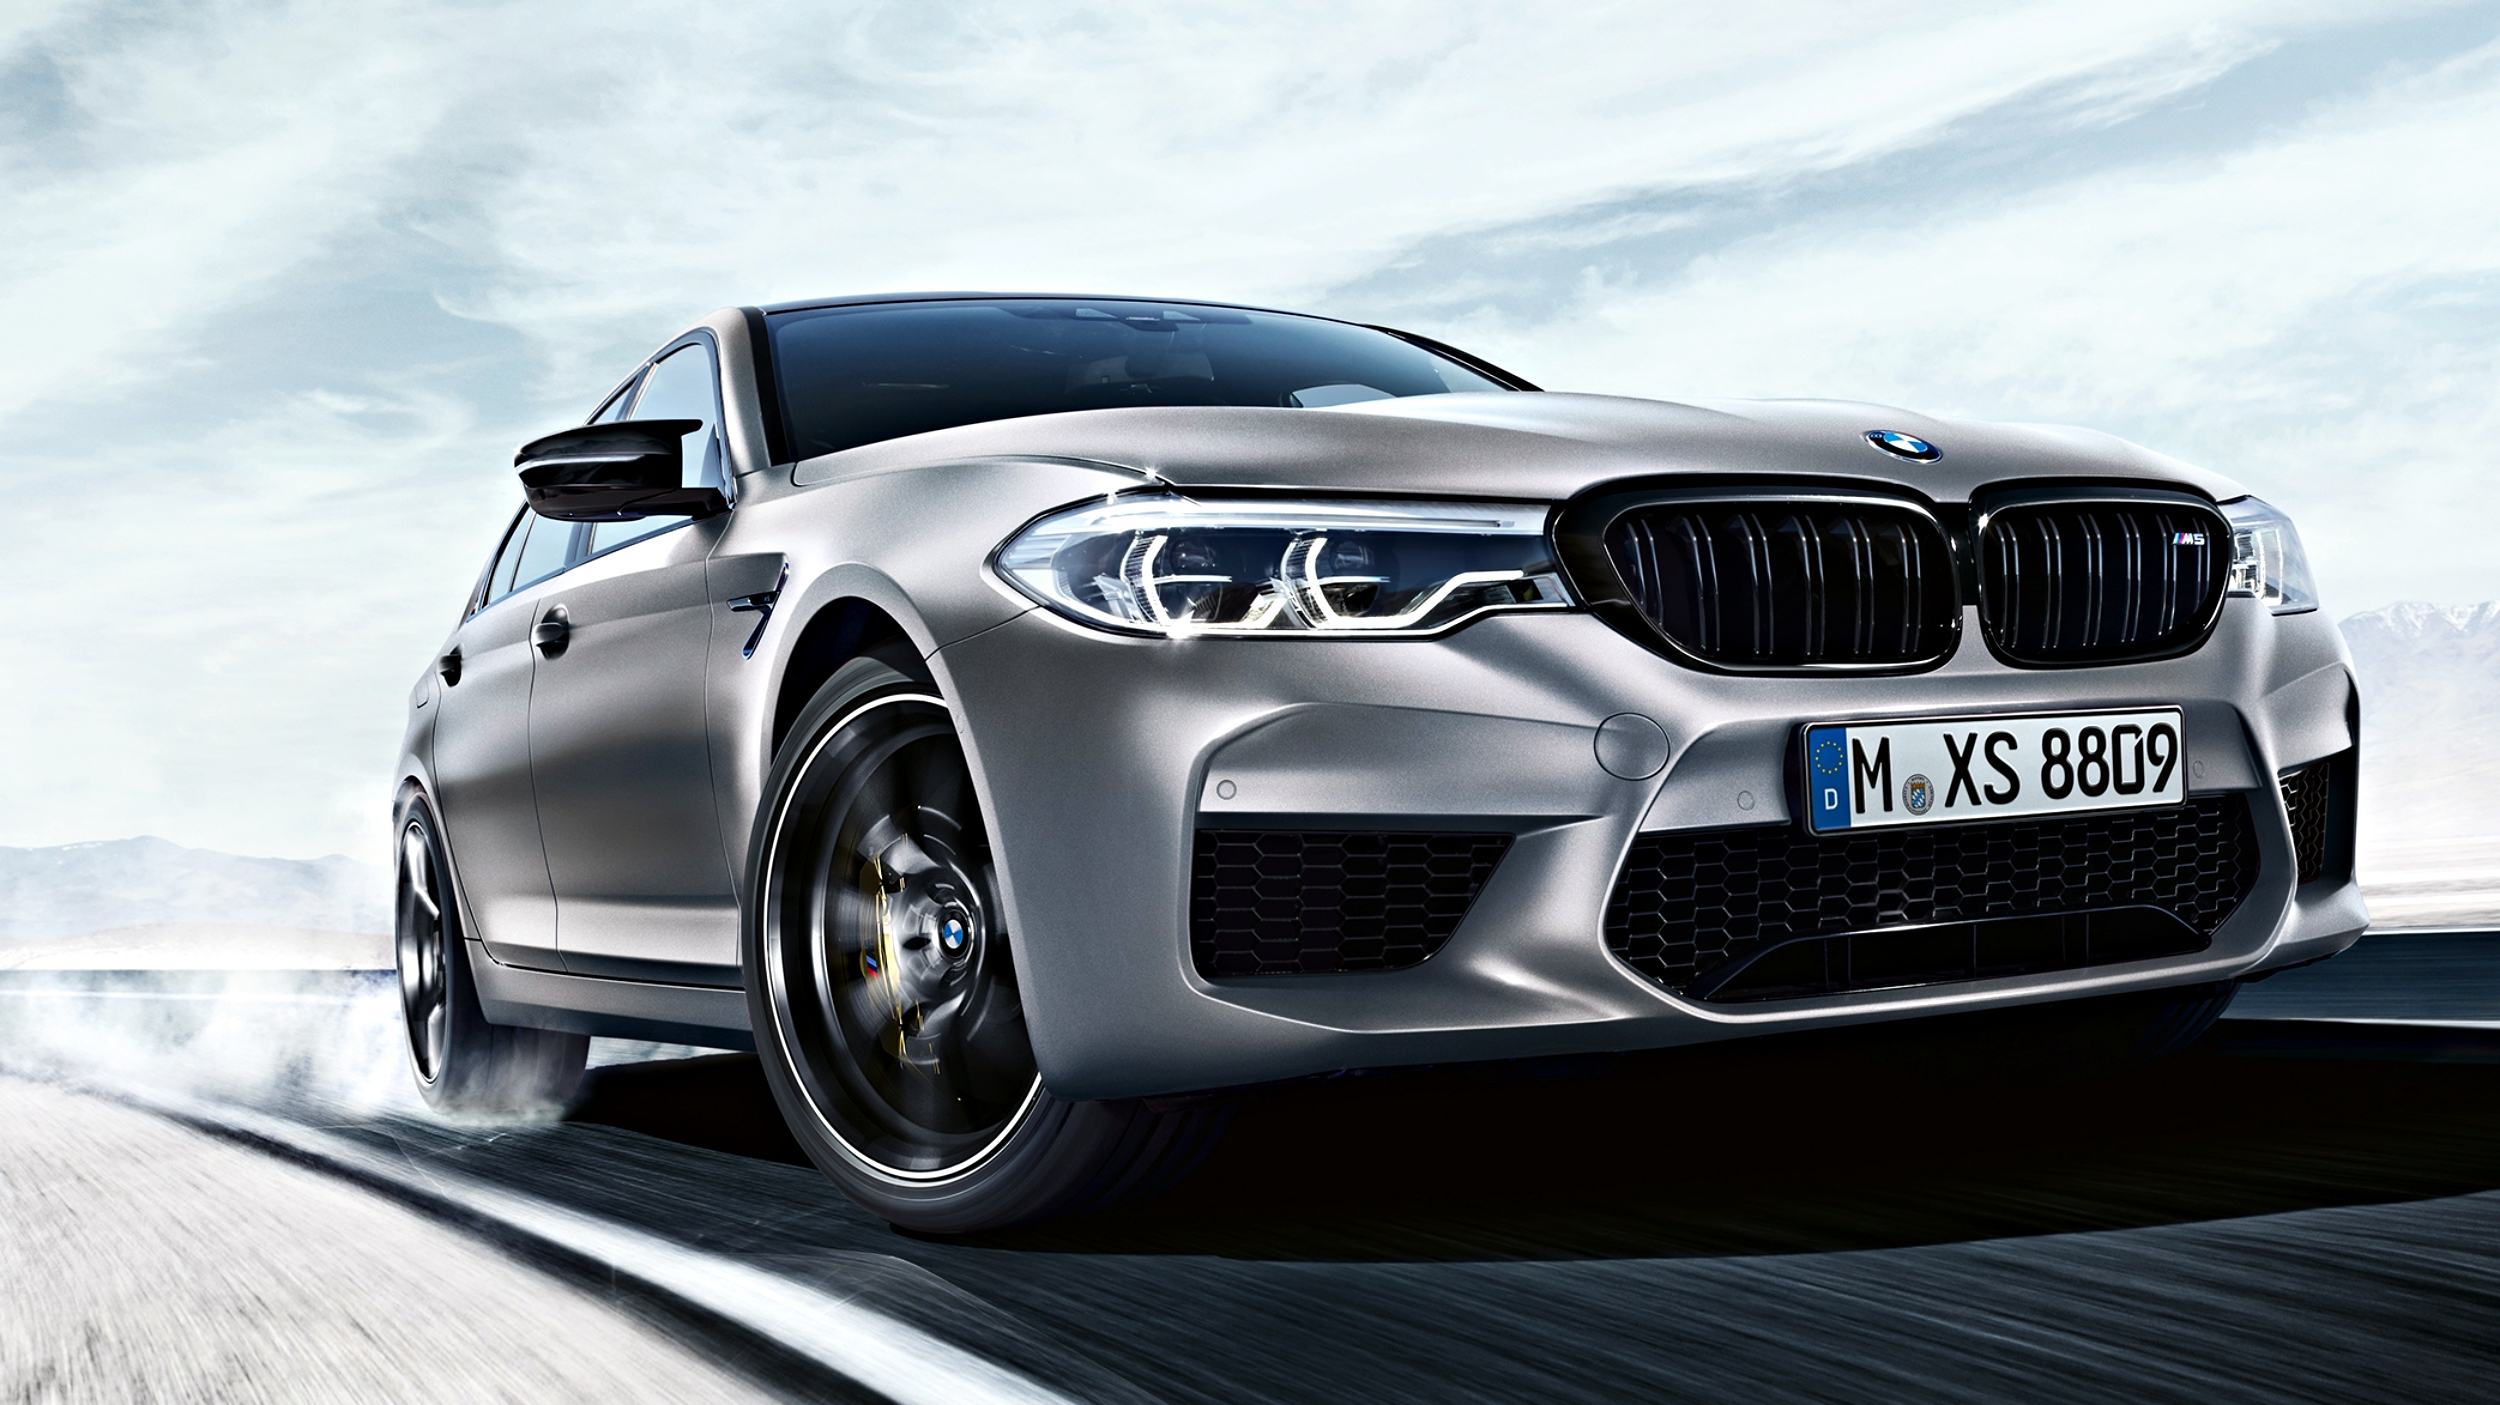 News Bmw M5 Competition Lands To Smoke Amg E63 S